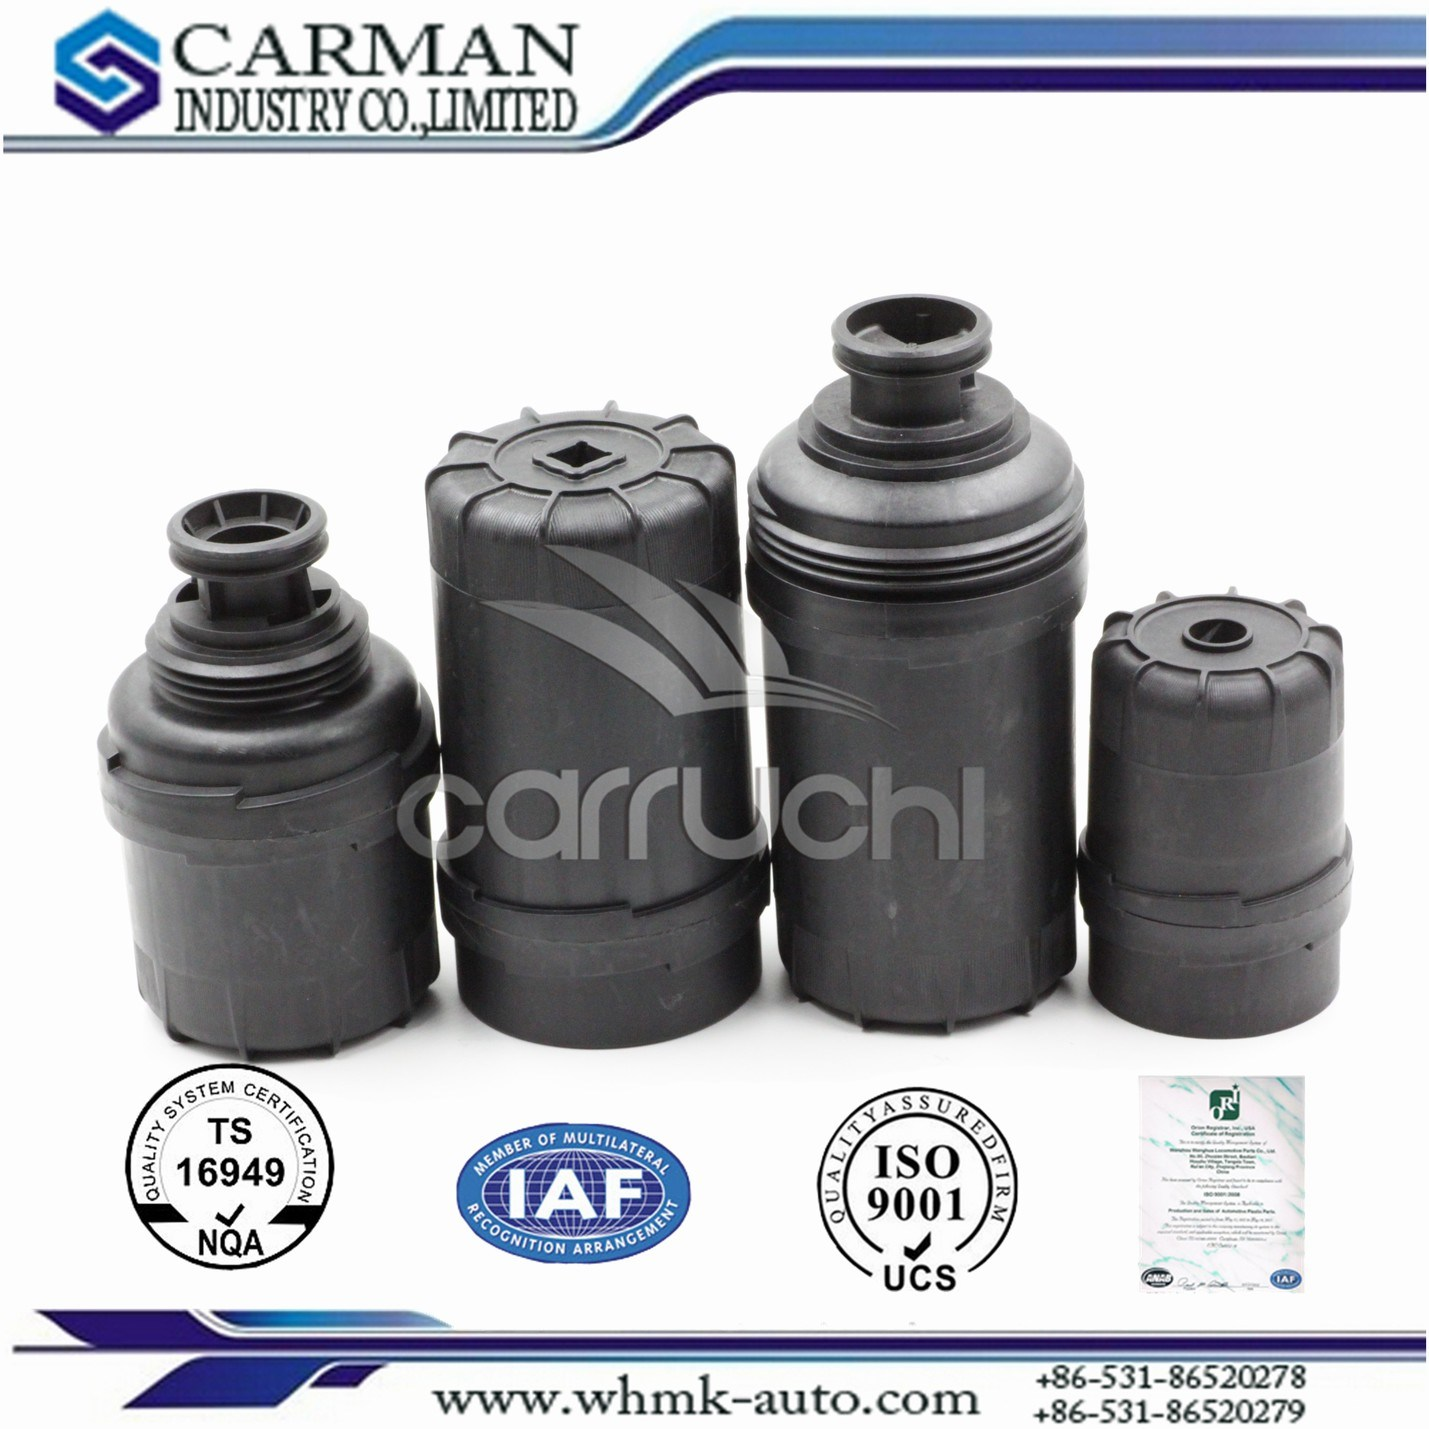 Oil Filter for Cummins Engine, Filters for Construction Machinery, Oil Filter, Auto Parts, Hydraulic Oil Filter